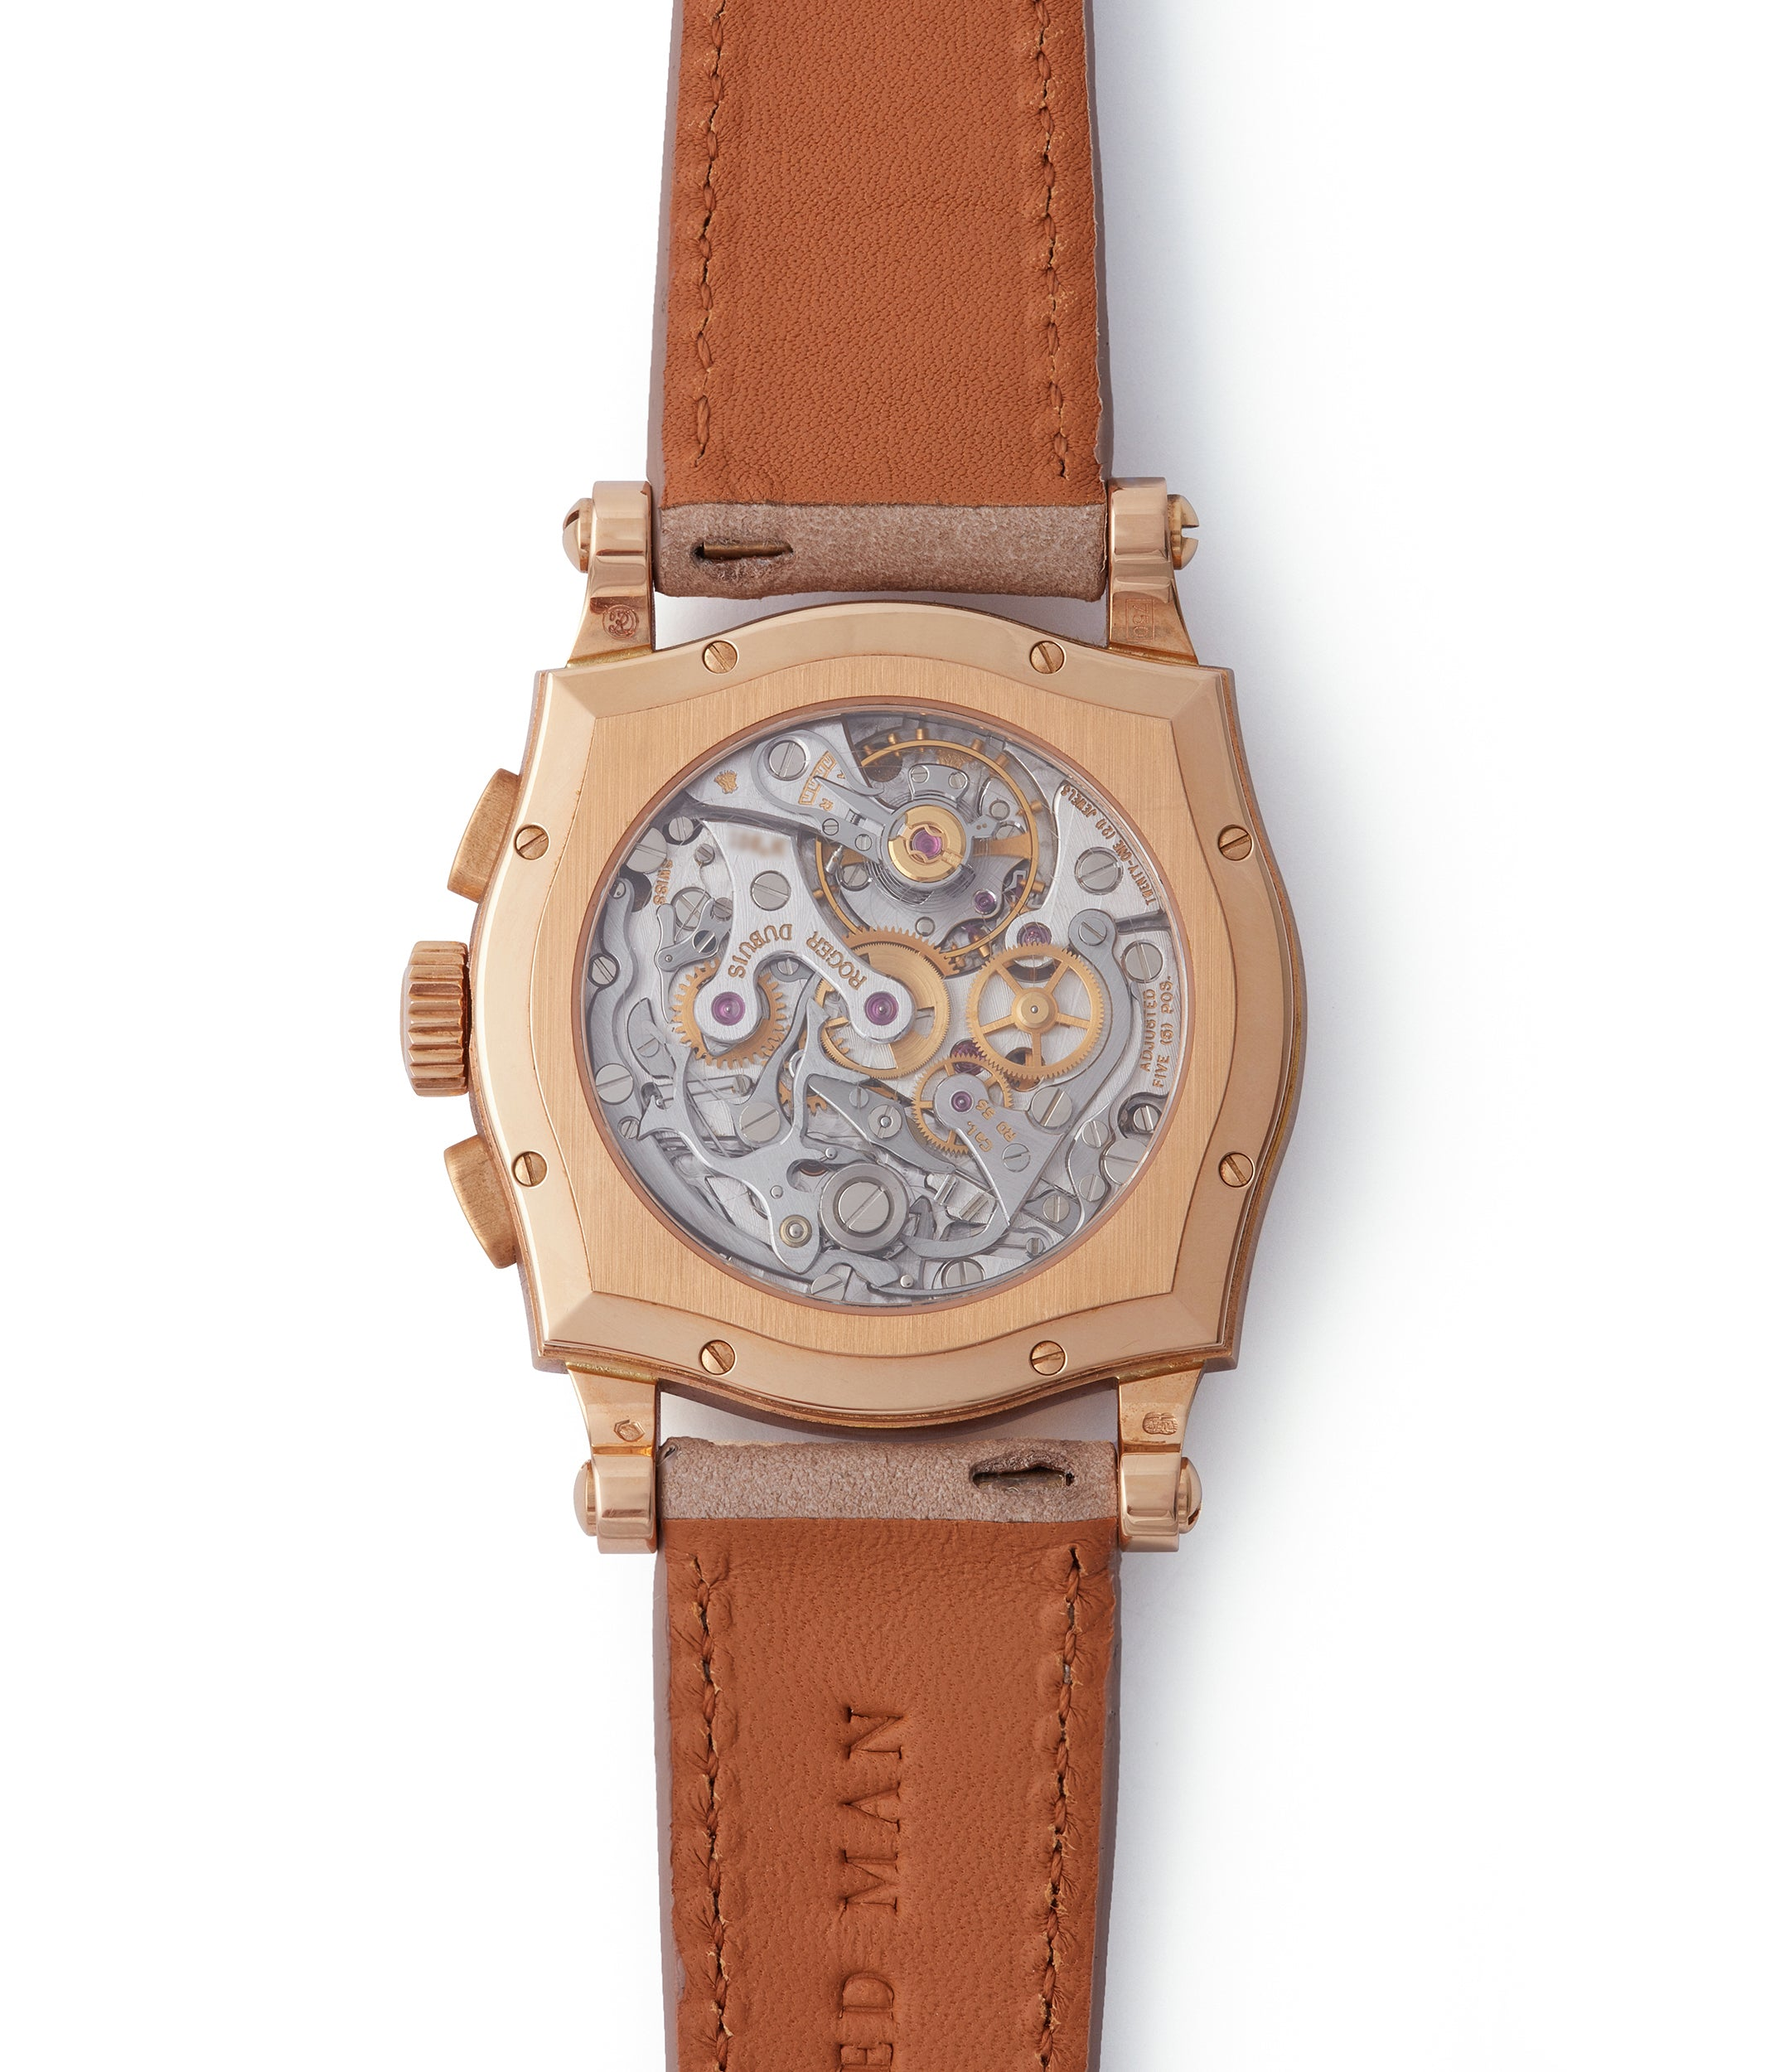 RD56 manual-winding Roger Dubuis Sympathie Chronograph S37 56 0 rose gold dress watch for sale online at A Collected Man London UK specialist of independent watchmakers